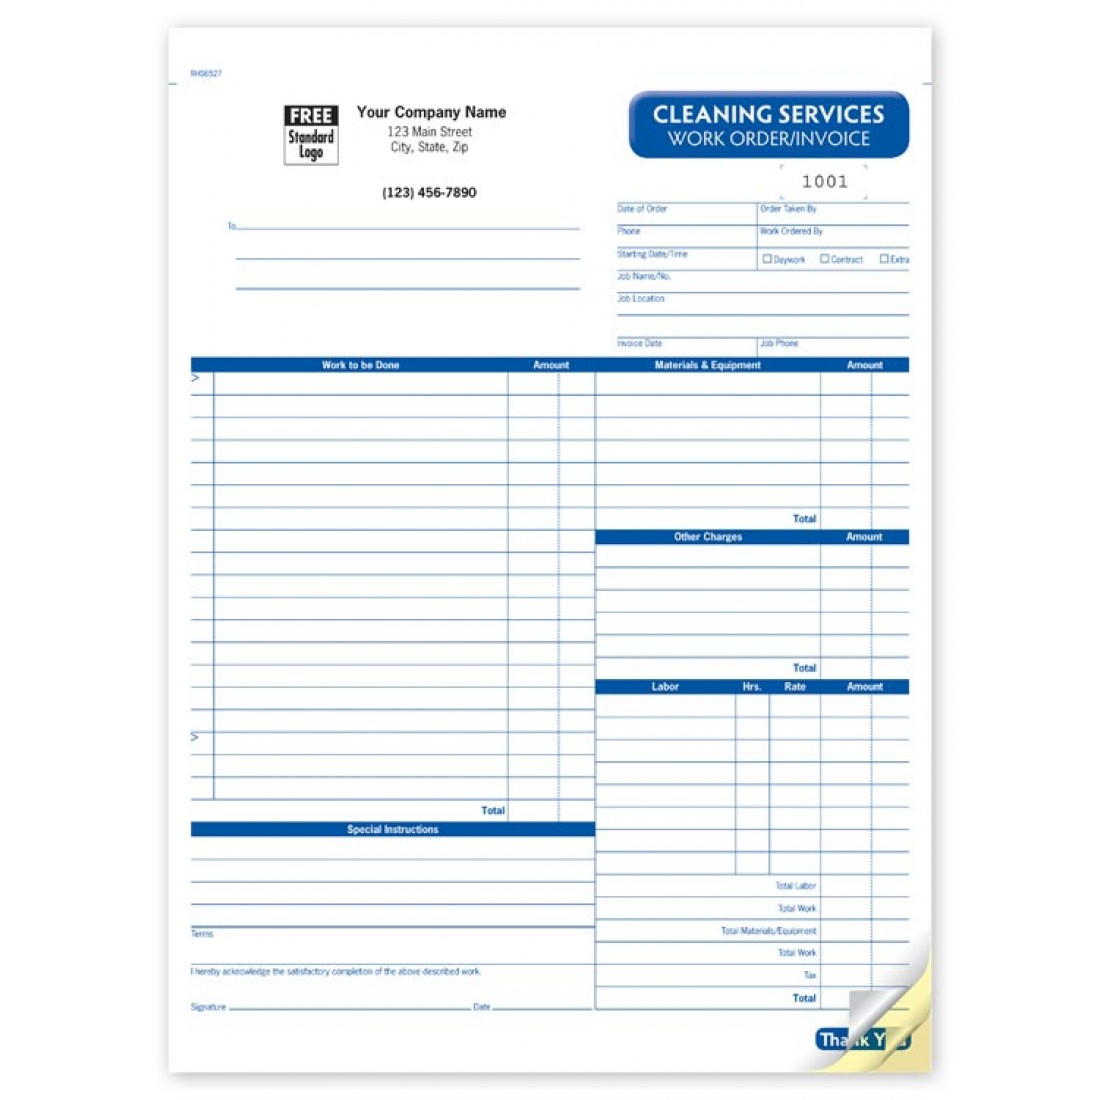 Cleaning Work Order Invoice Forms